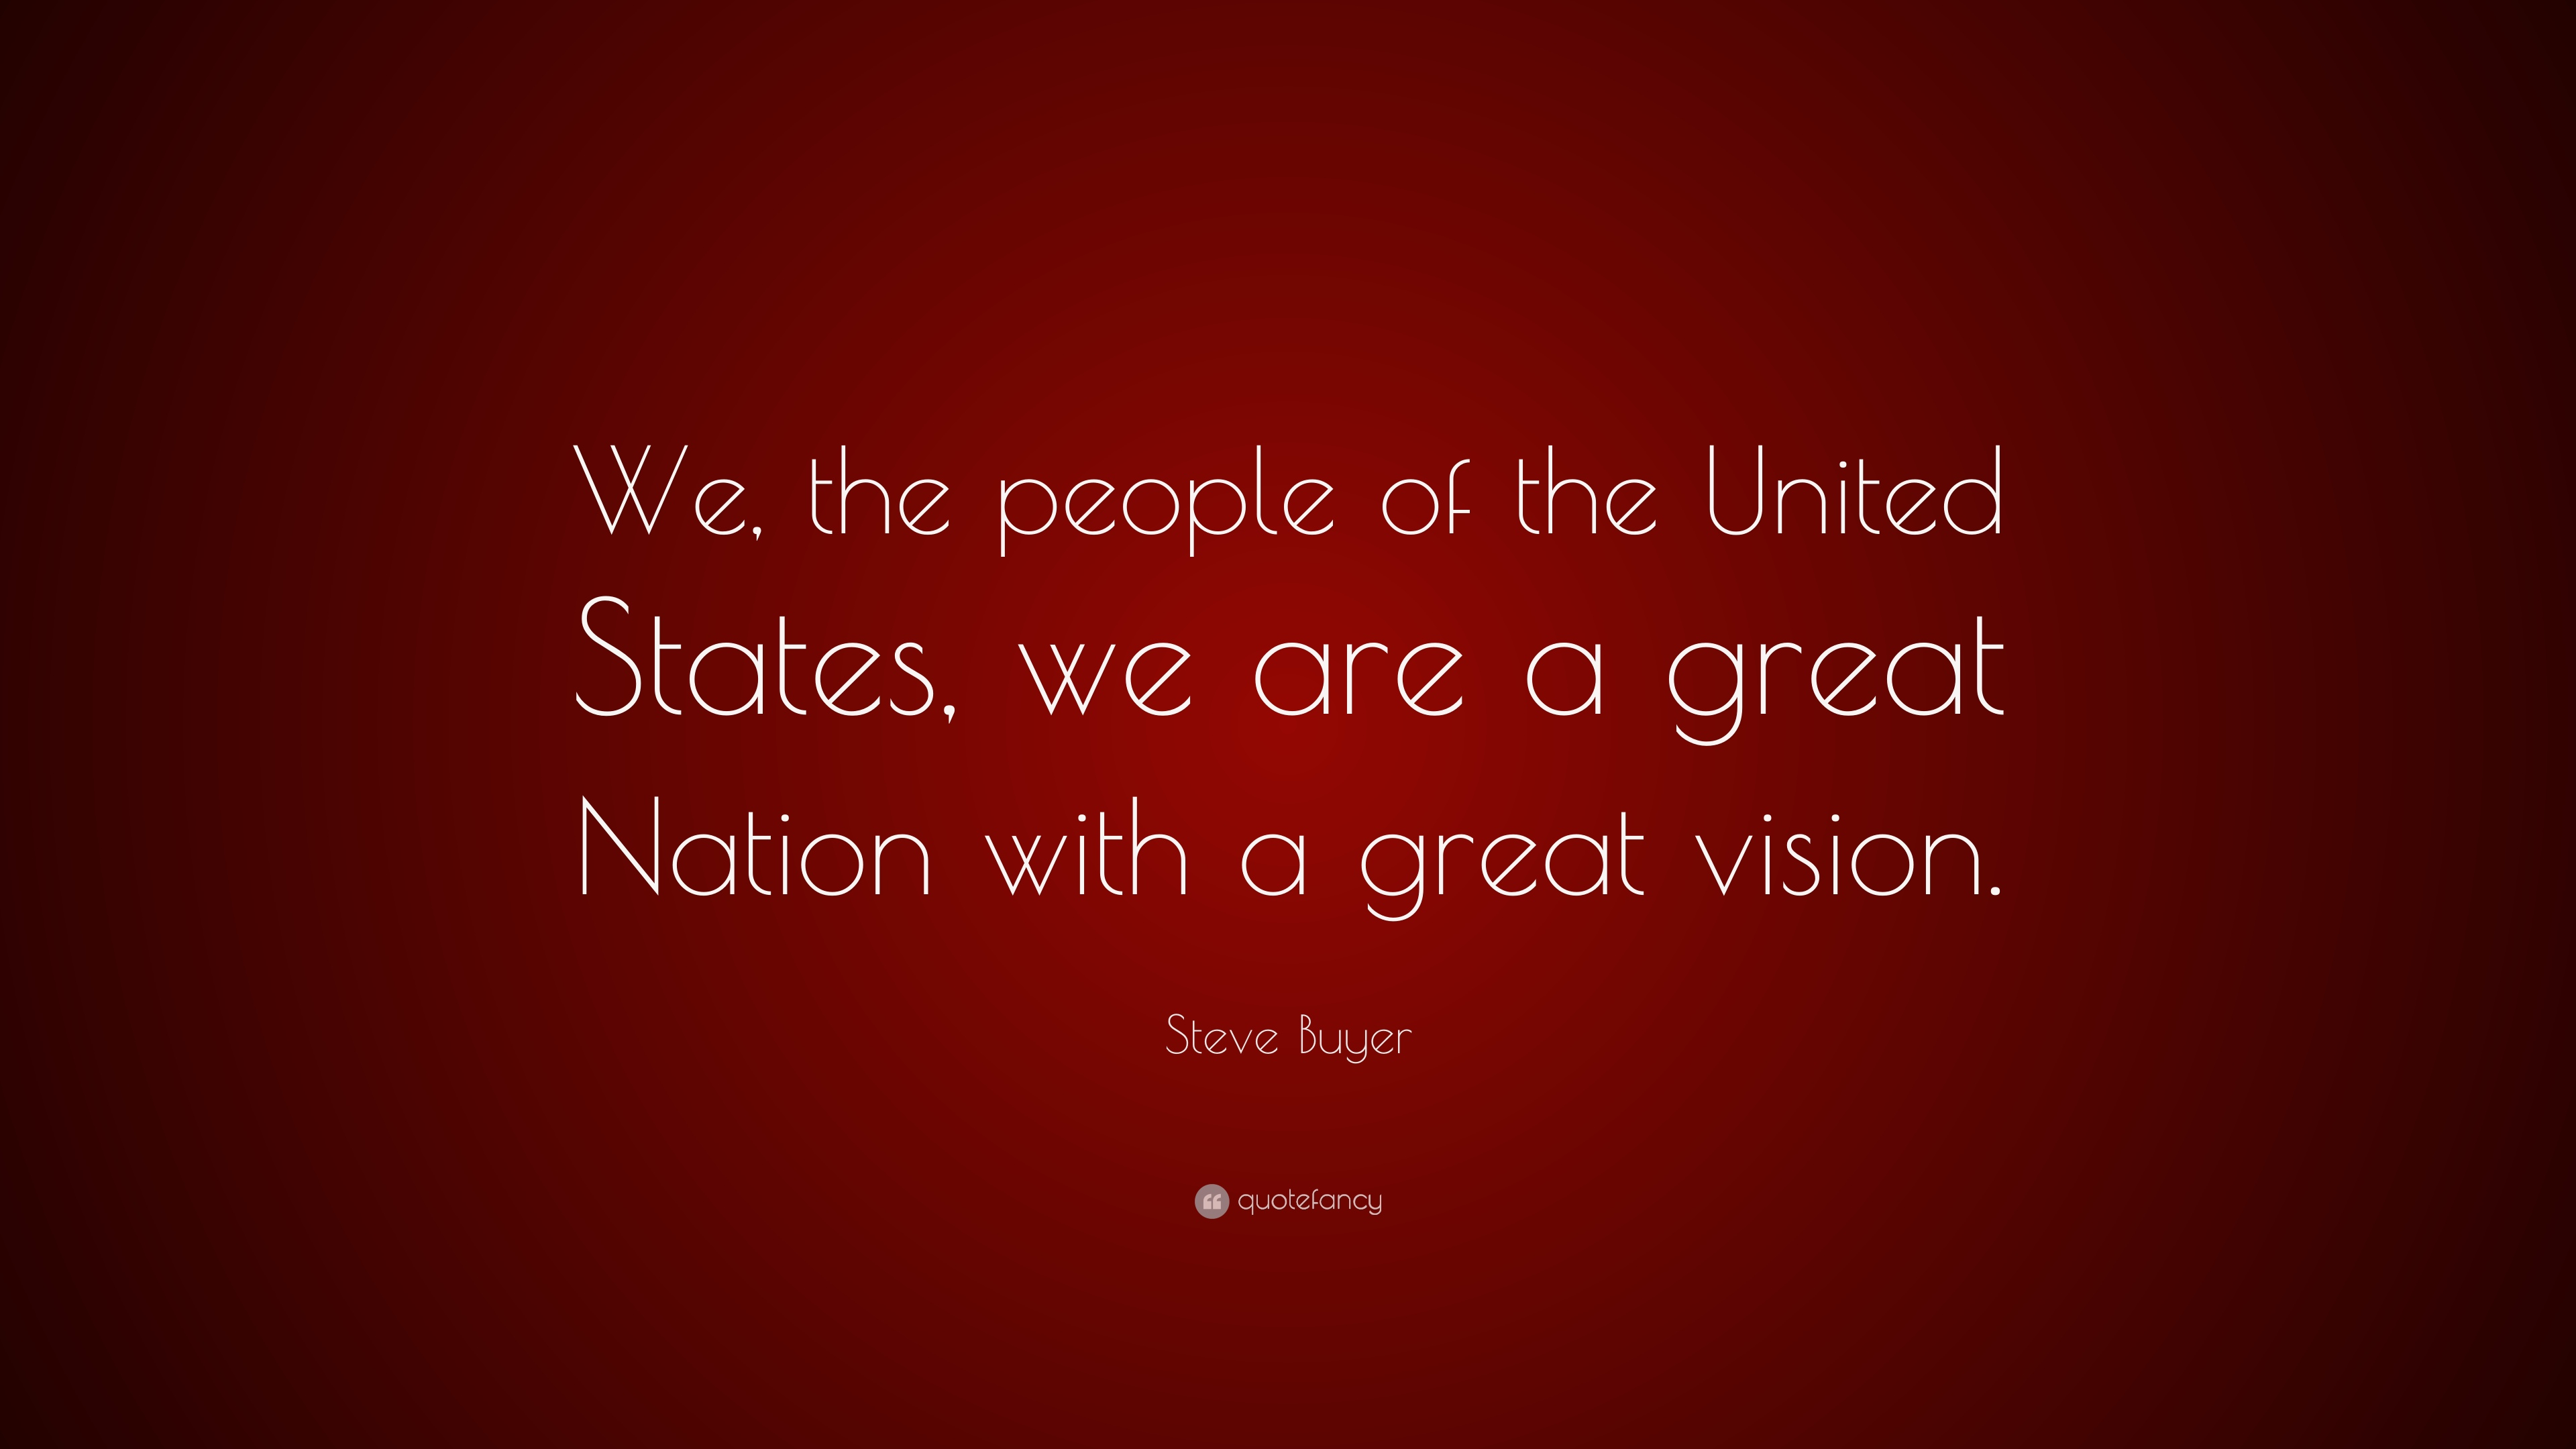 steve buyer quote we the people of the united states we are a